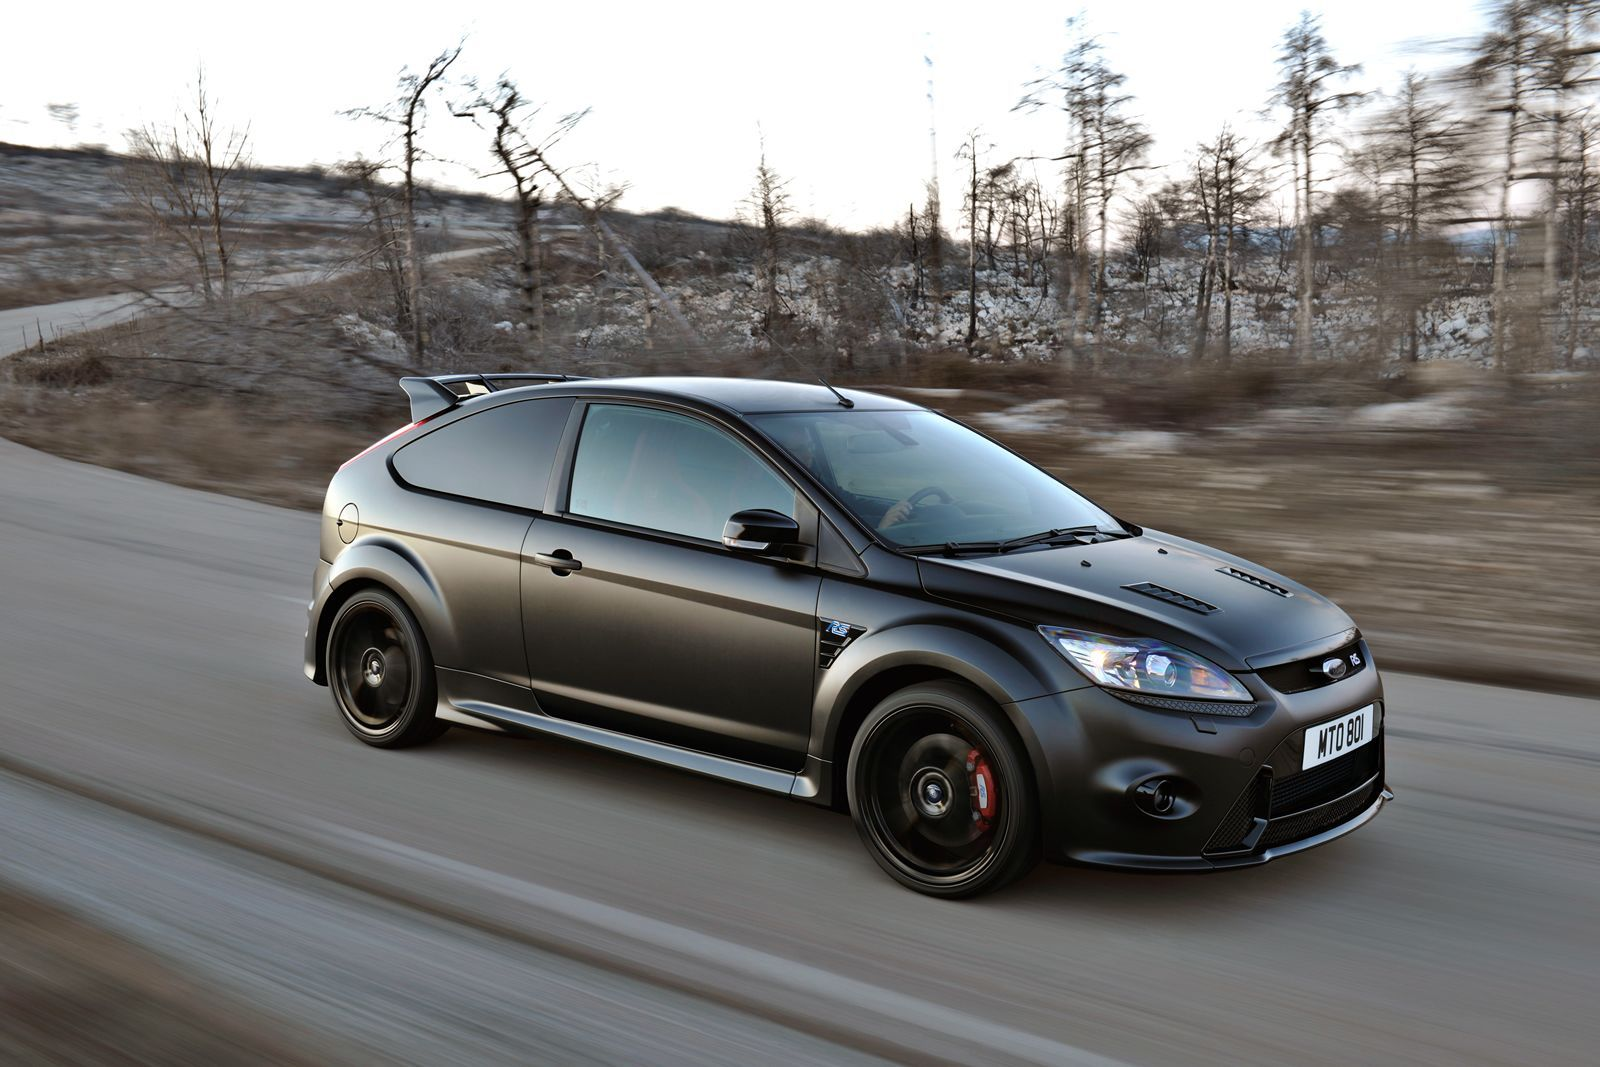 2011-Ford-Focus-RS500-255513.jpg (1600×1067)